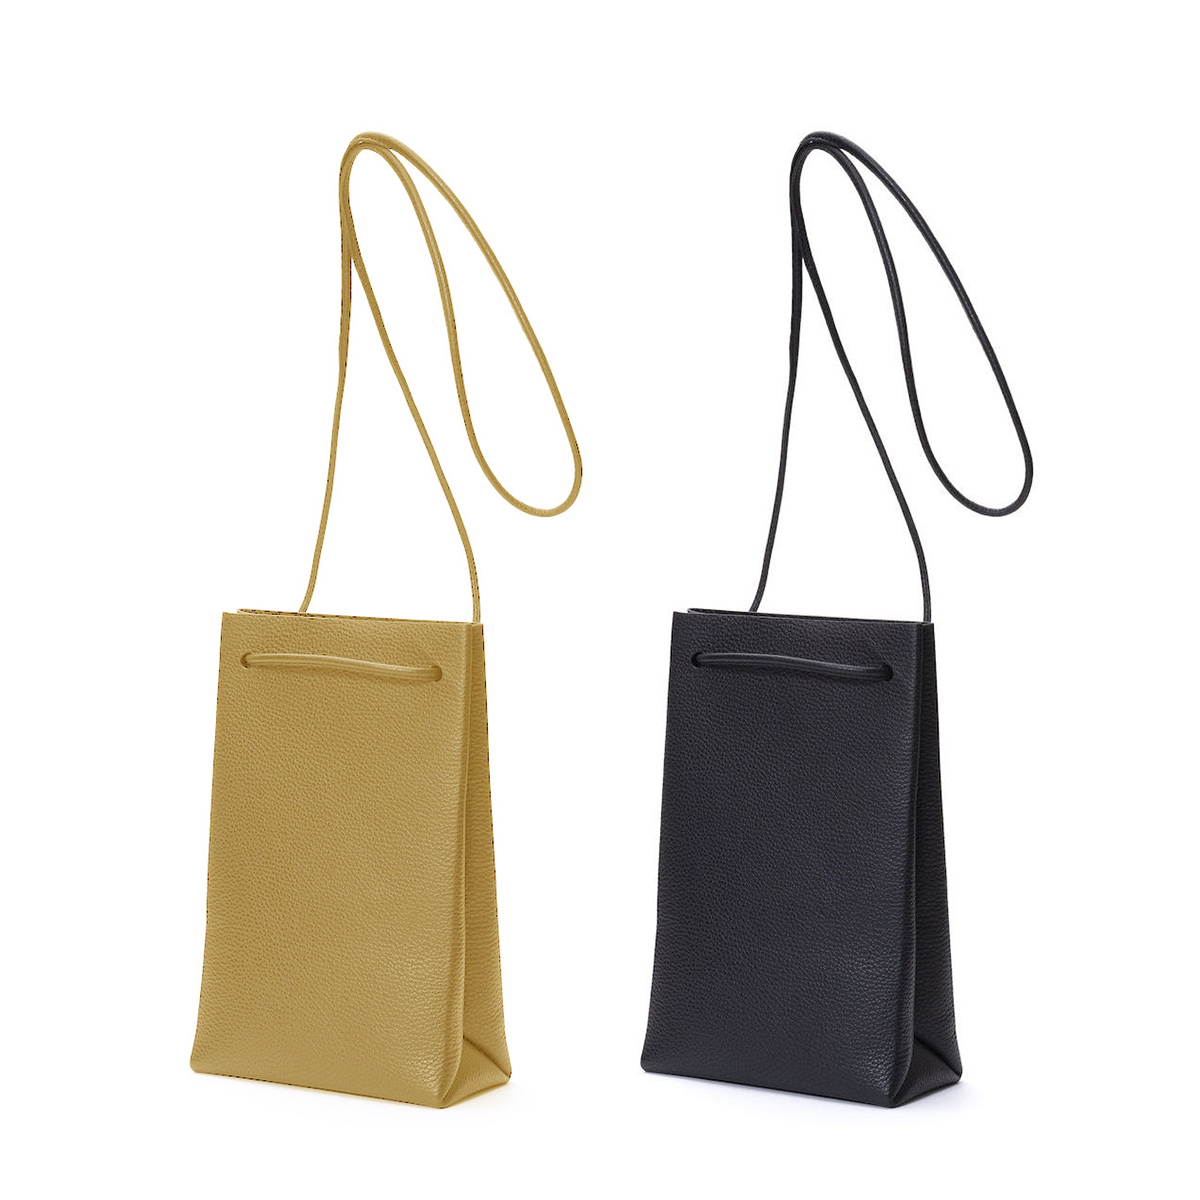 Aeta / PG LEATHER SHOULDER TOTE XS (Black)